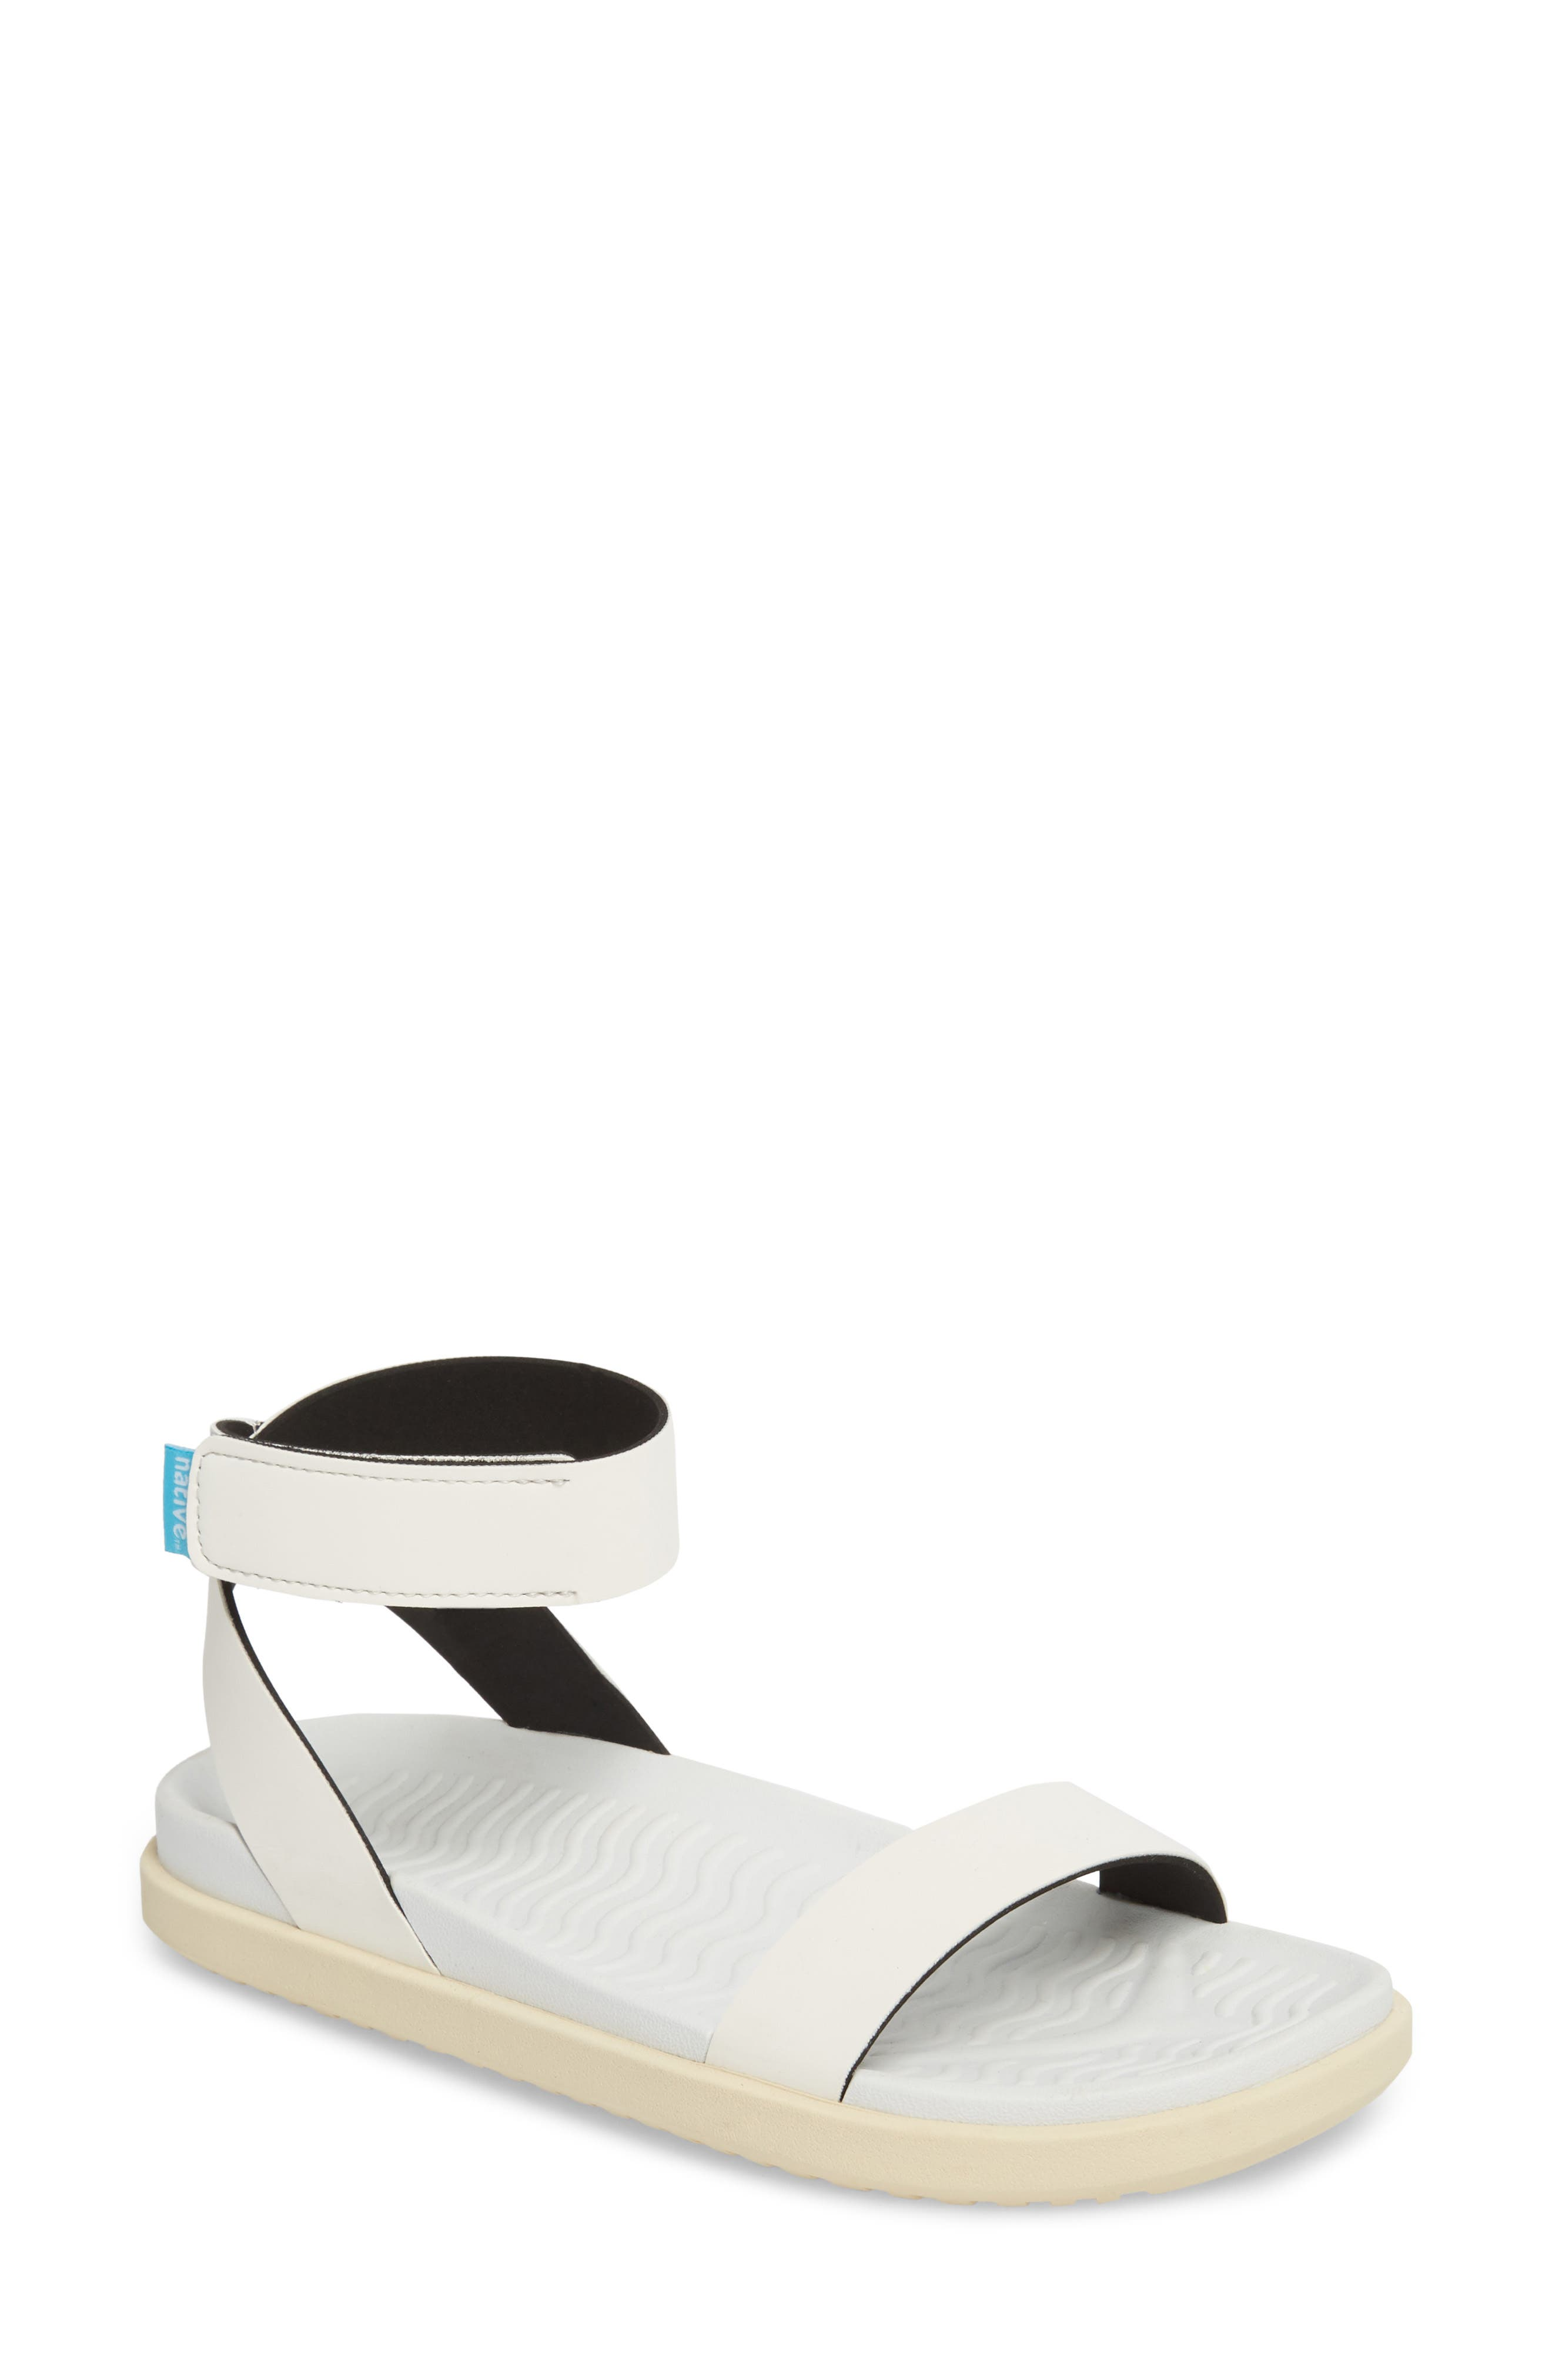 Native Shoes Juliet Sandal, White